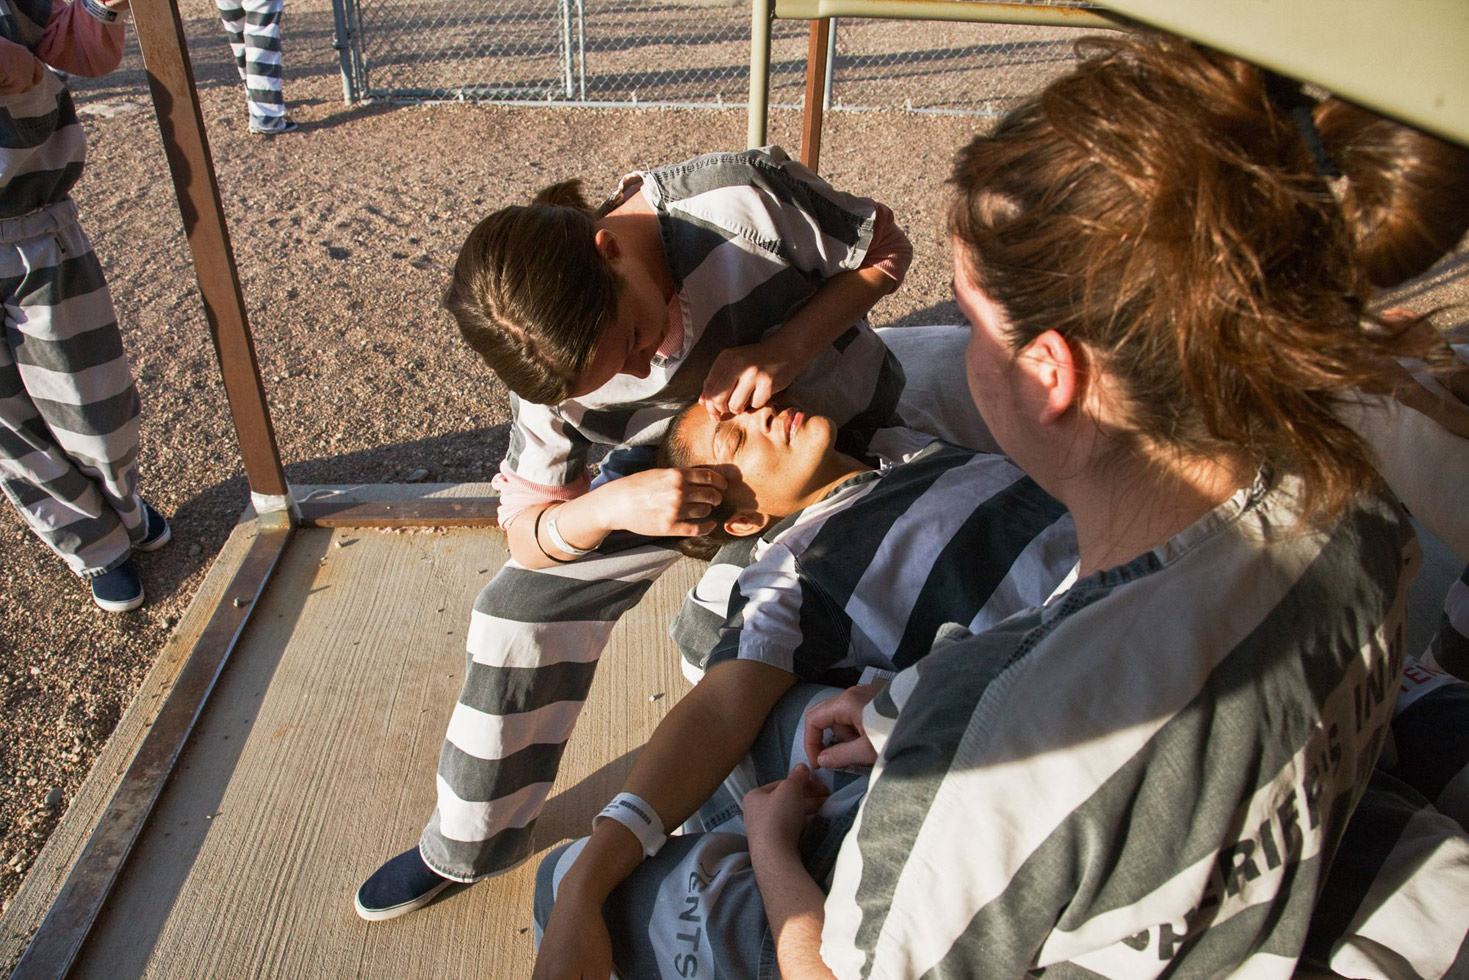 A female inmate getting her eyebrows done.